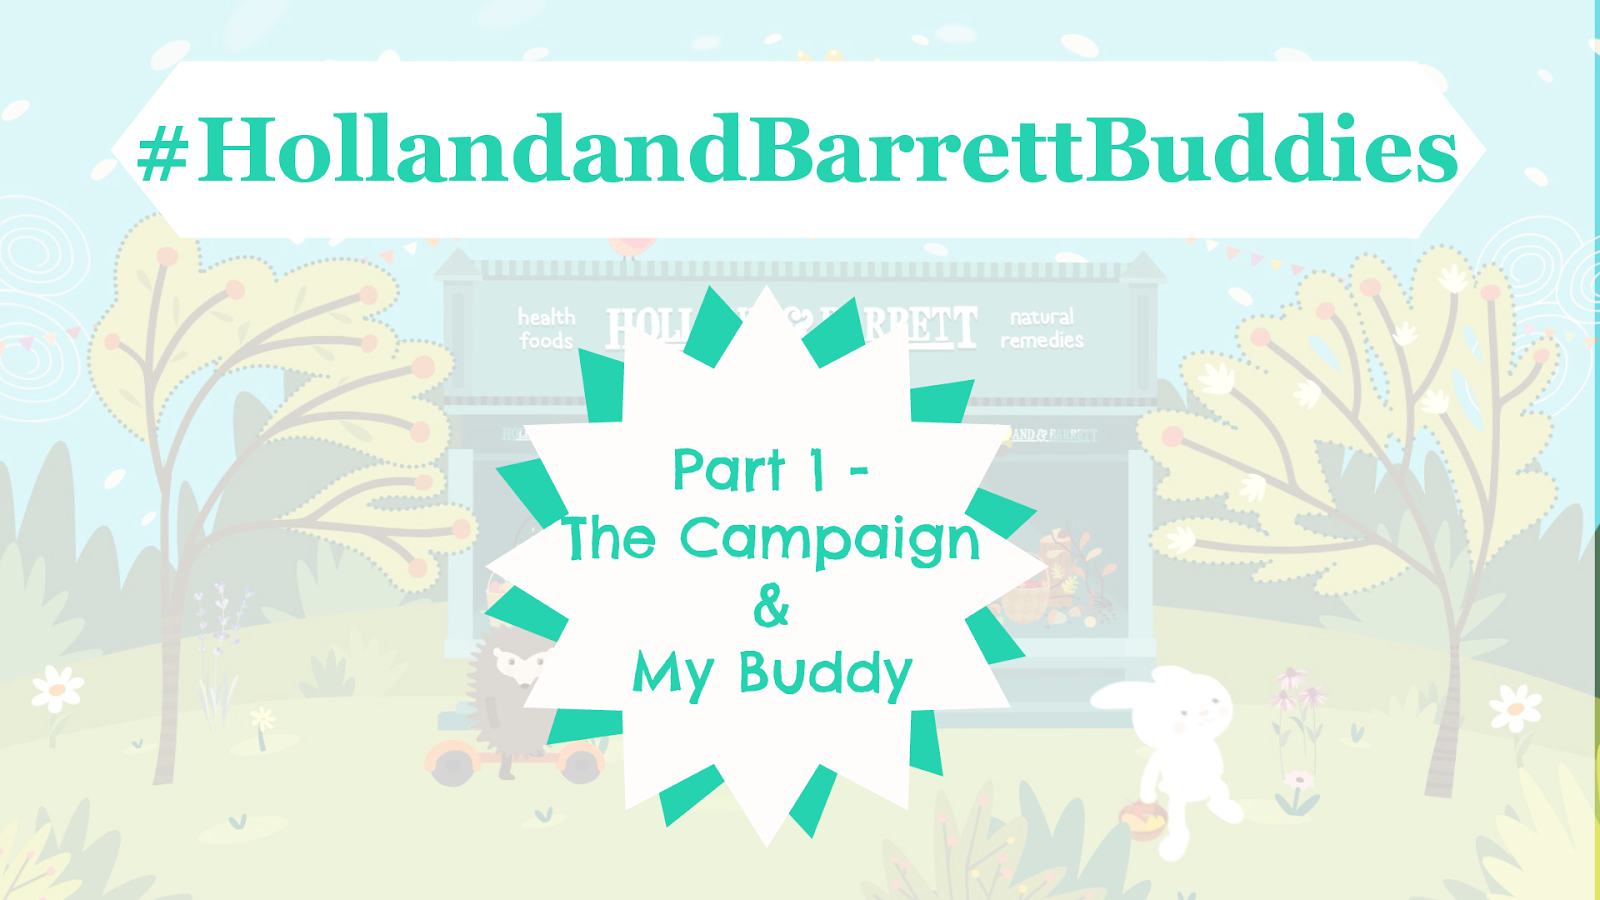 #HollandandBarrettBuddies-Holland-And-Barrett-Buddies